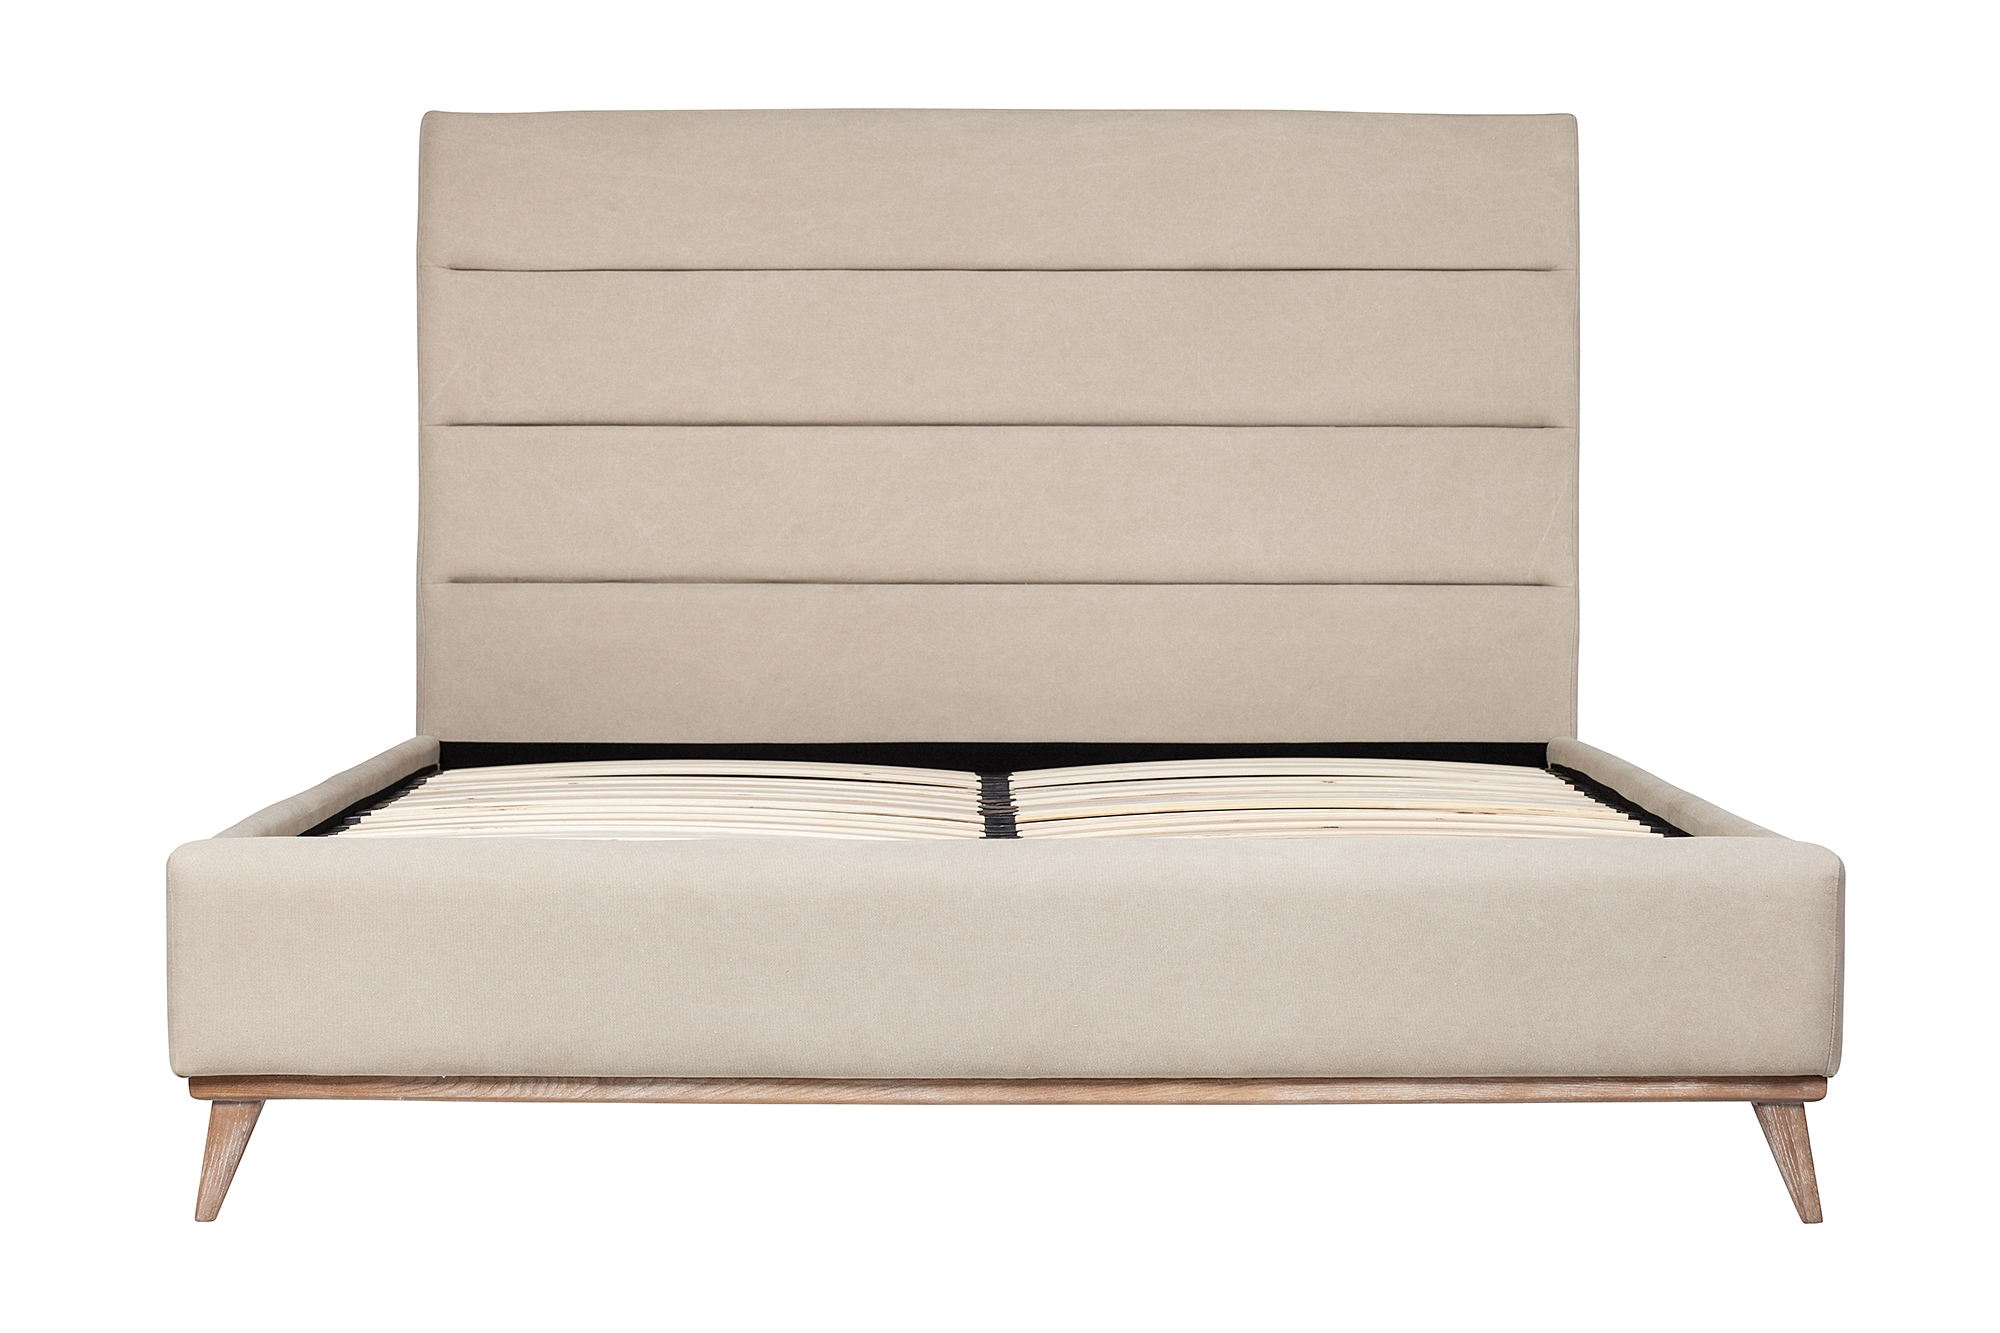 Cooper Upholstered King Bed Frame, The Khazana Home Austin Furniture ...